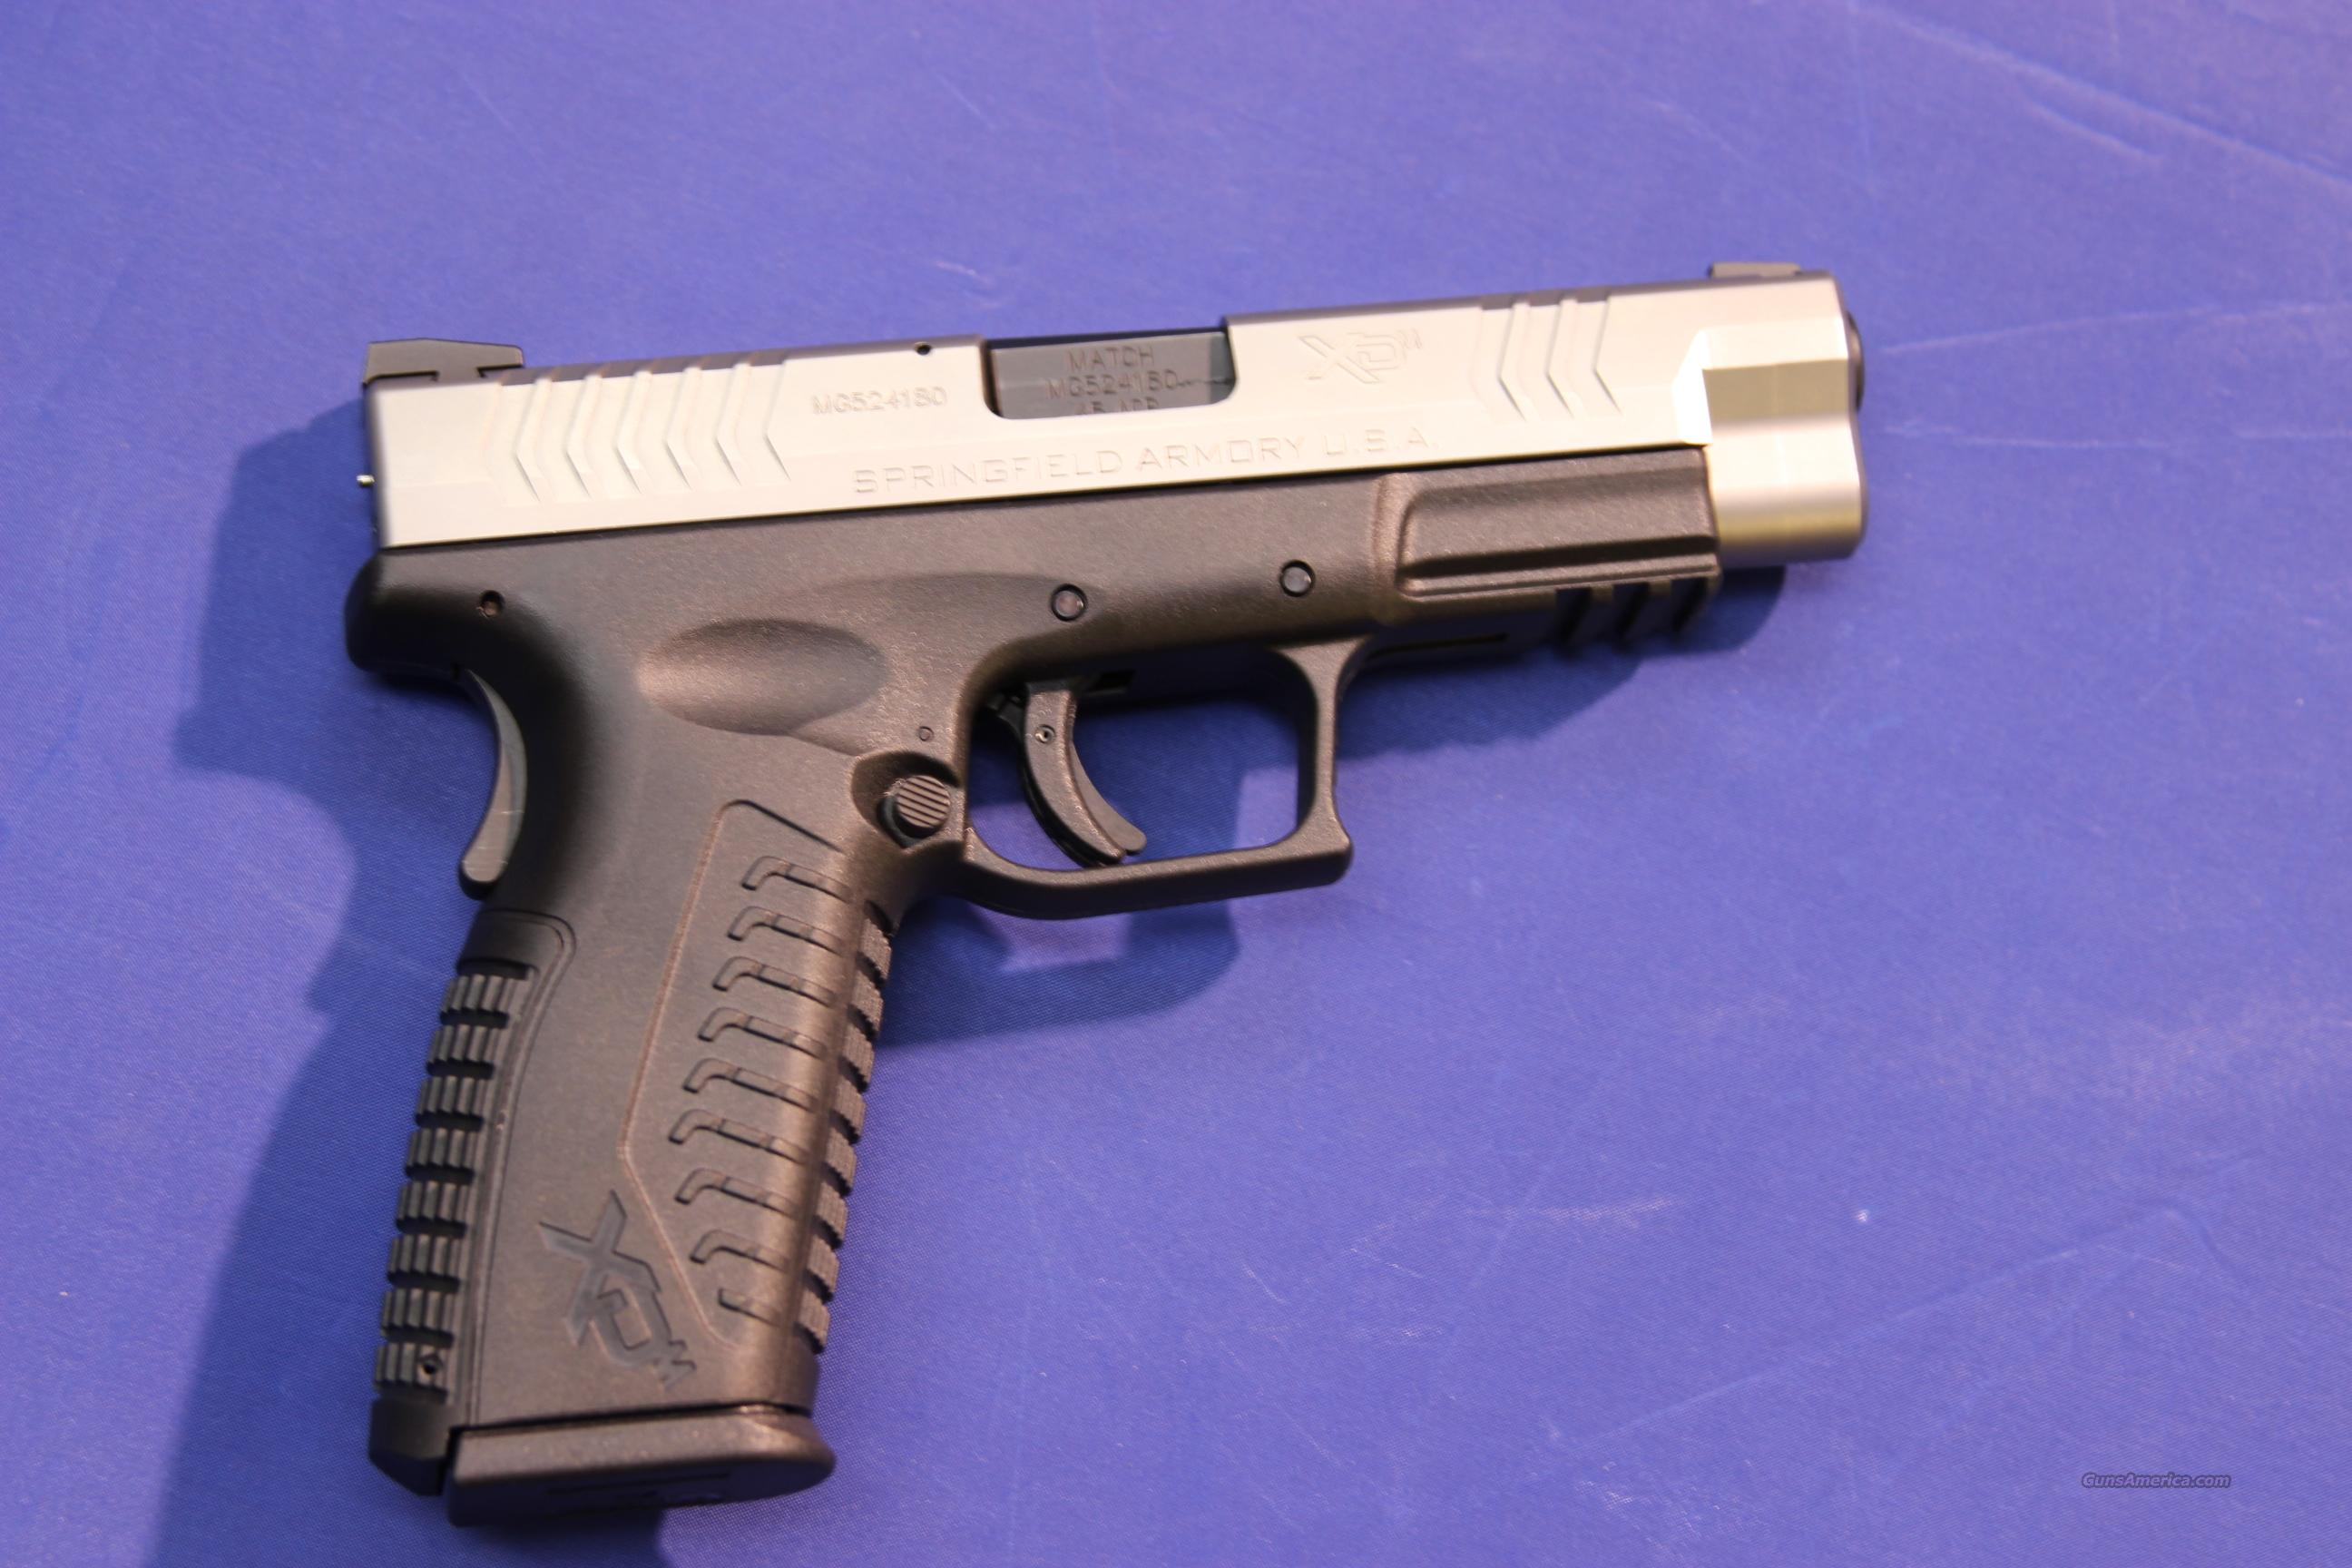 SPRINGFIELD XDM-45 STAINLESS .45 ACP - EXCELLENT CONDITION  Guns > Pistols > Springfield Armory Pistols > XD-M